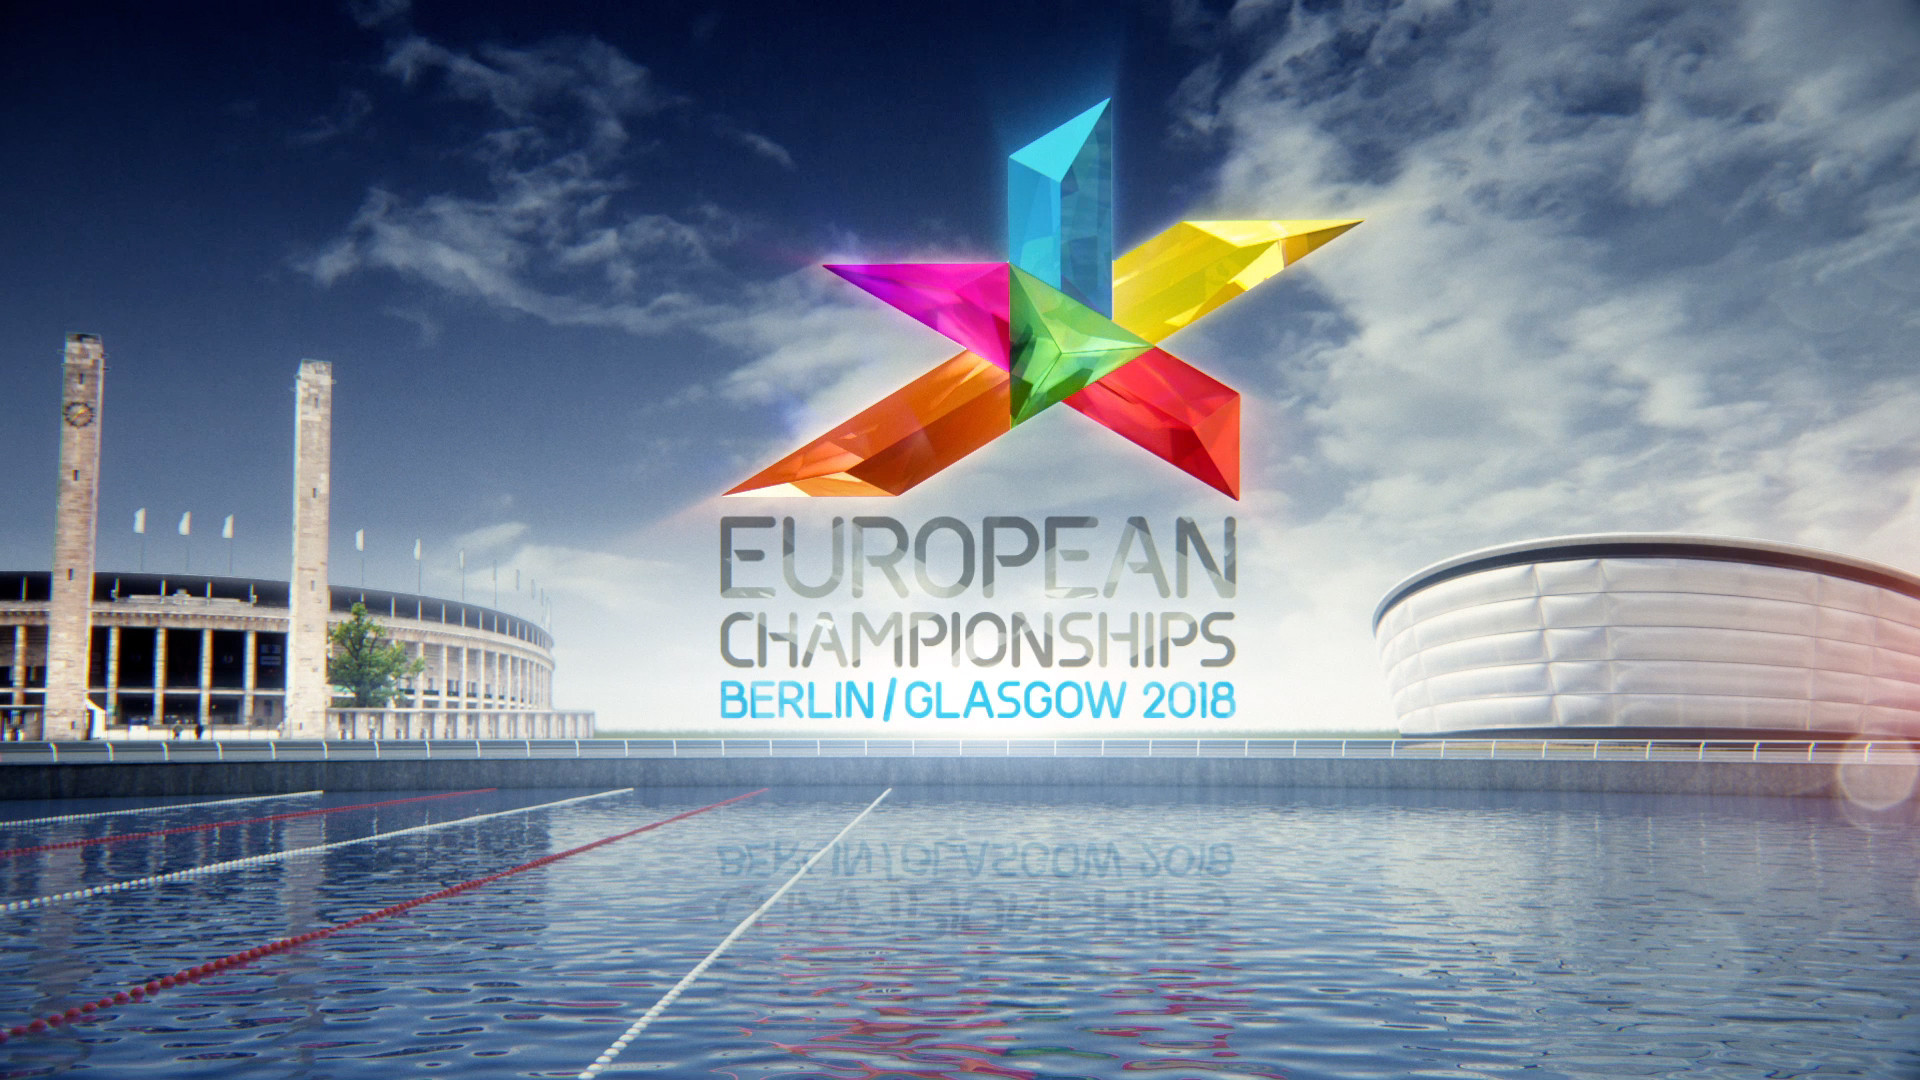 The next European Championships could again be hosted in more than one city ©European Championships